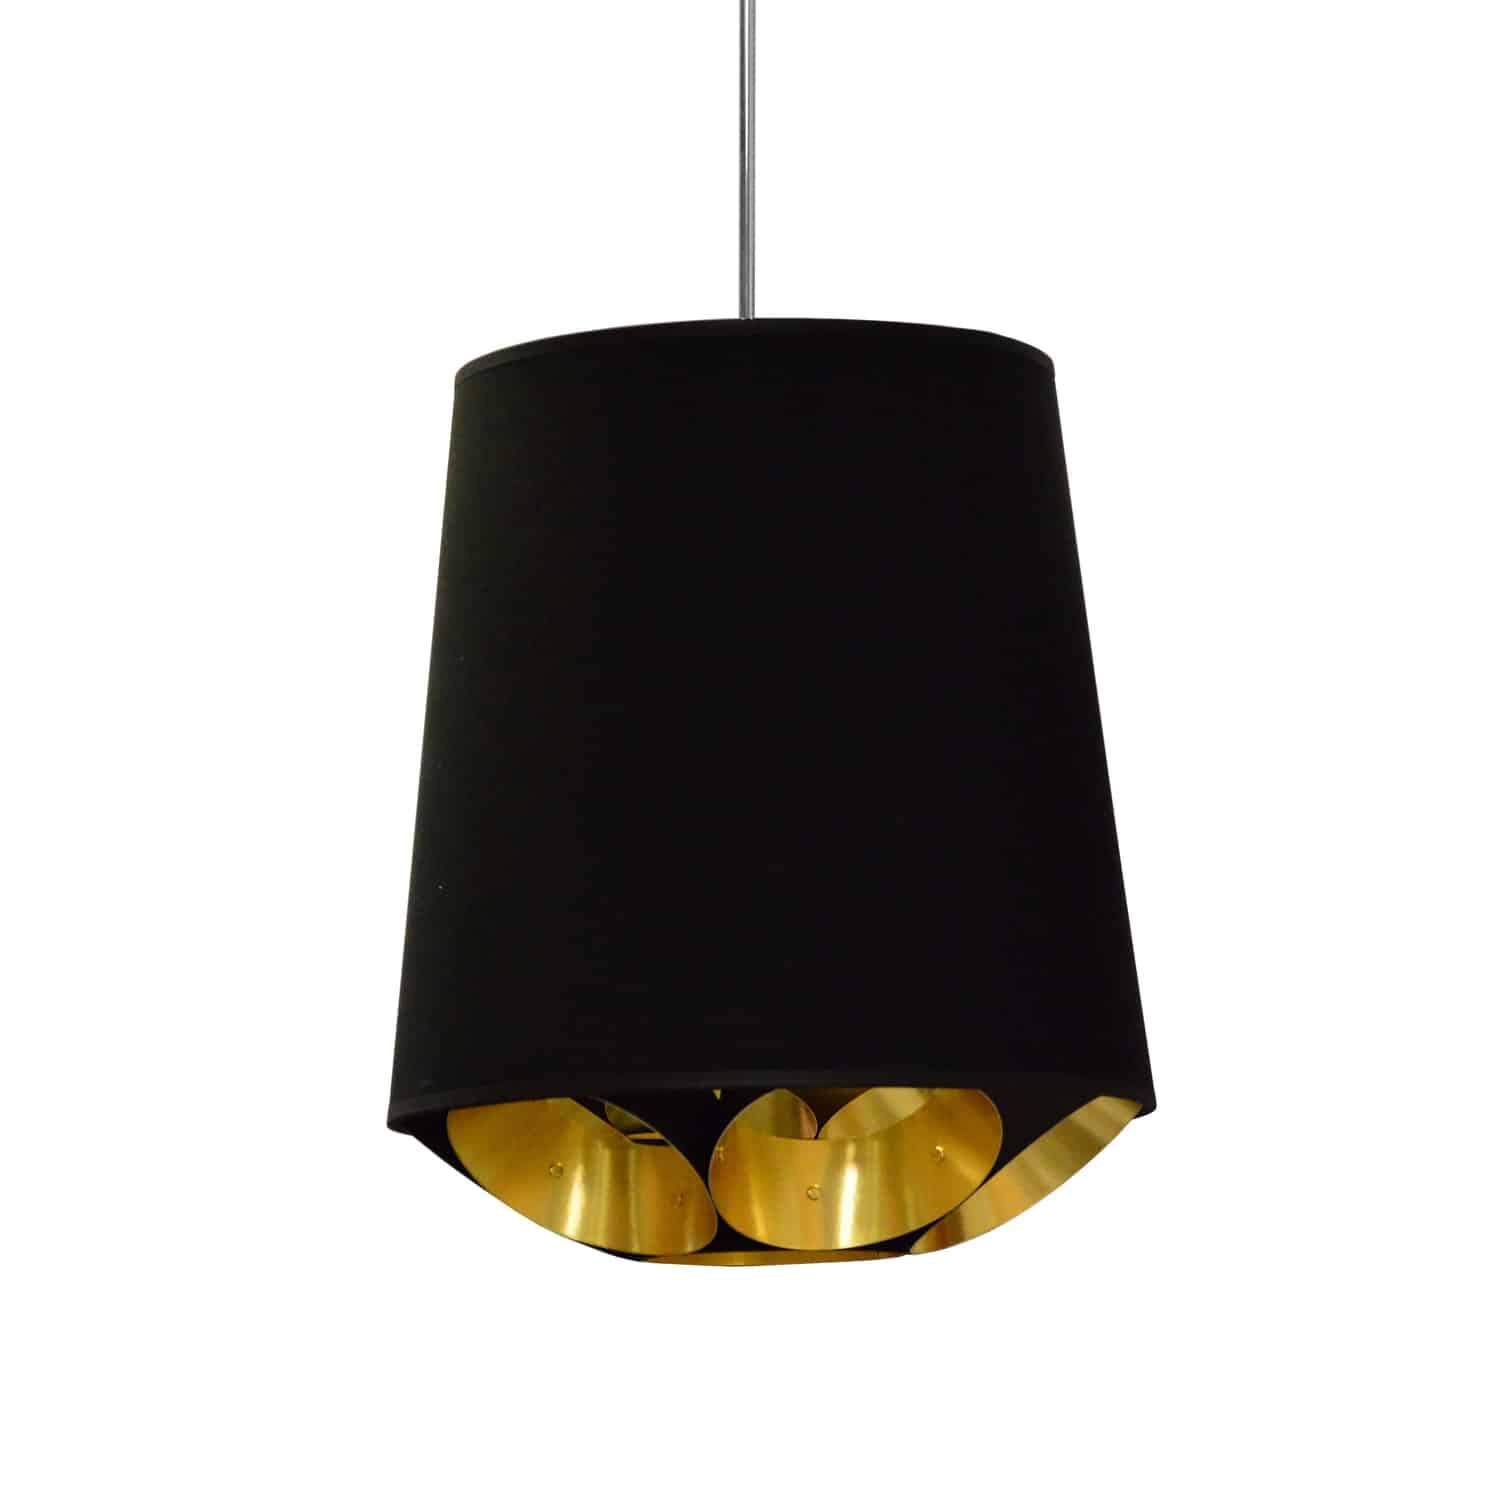 1 Light Hadleigh Pendant Black o Gold, Small Black